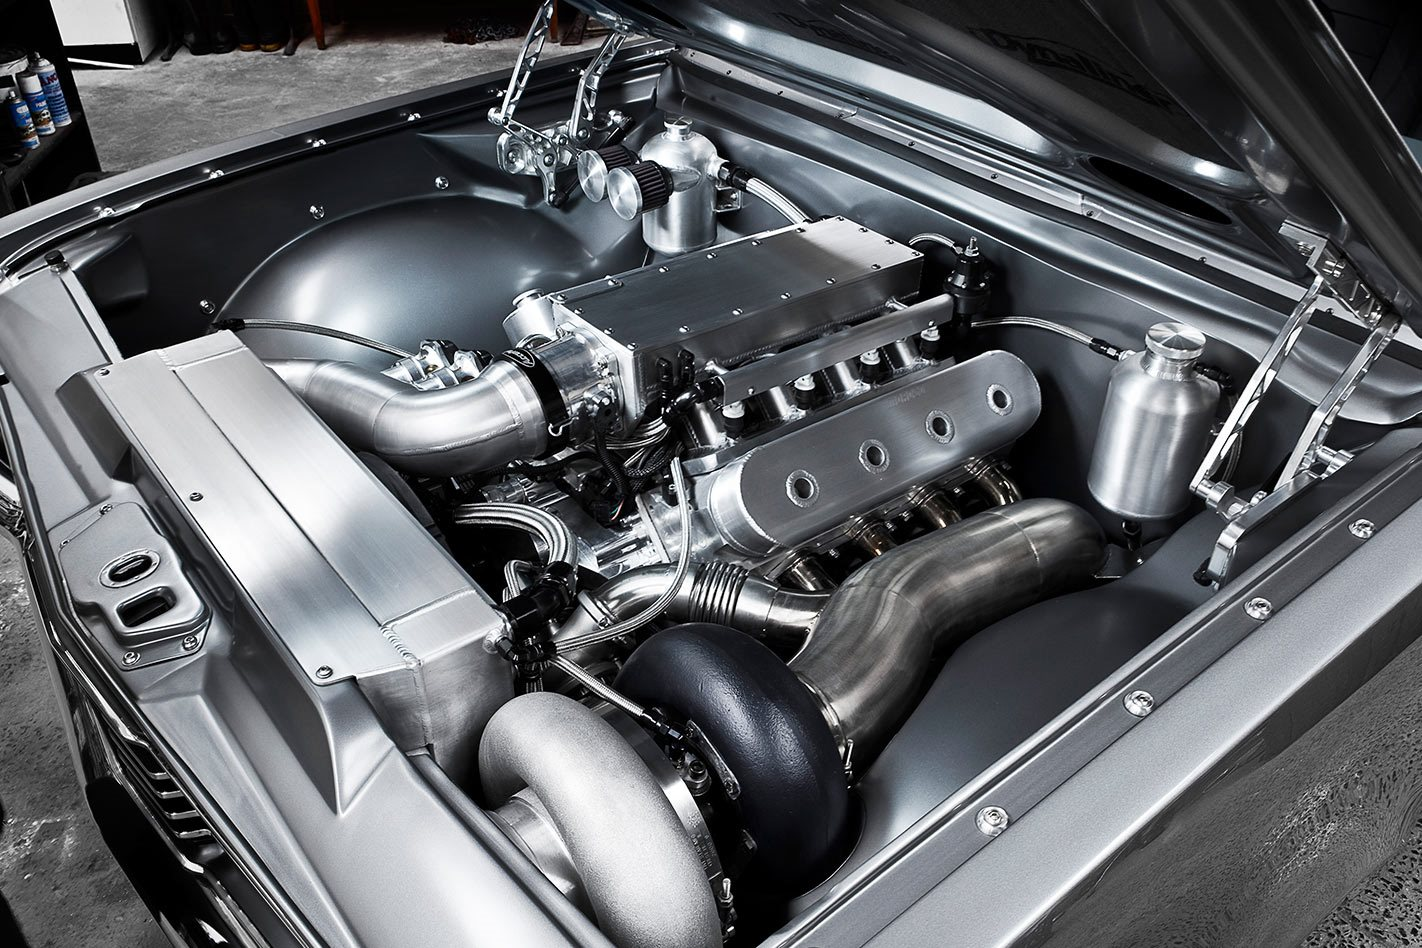 Holden HT Monaro engine bay